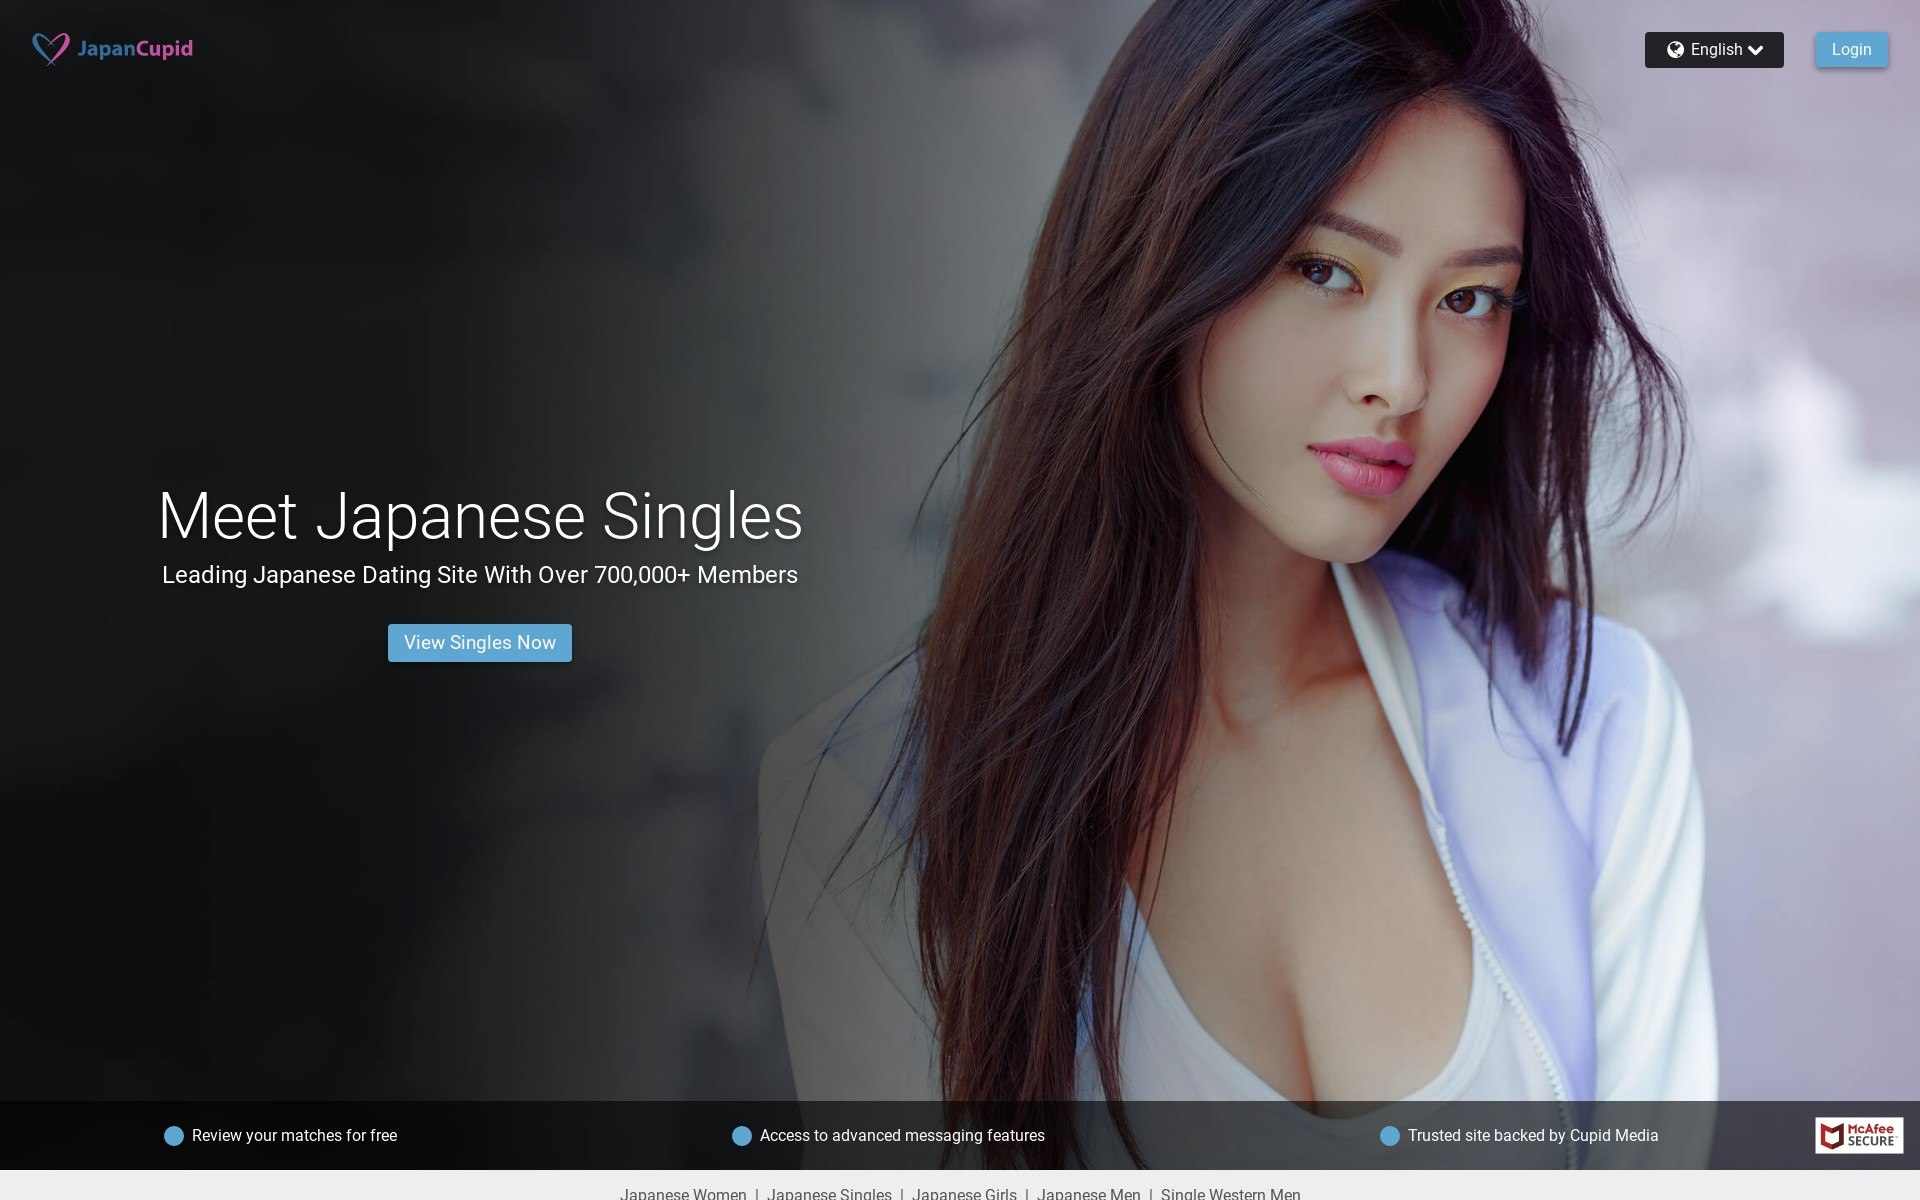 Japan Cupid Review - Sep 20 Update On Themailbride.com